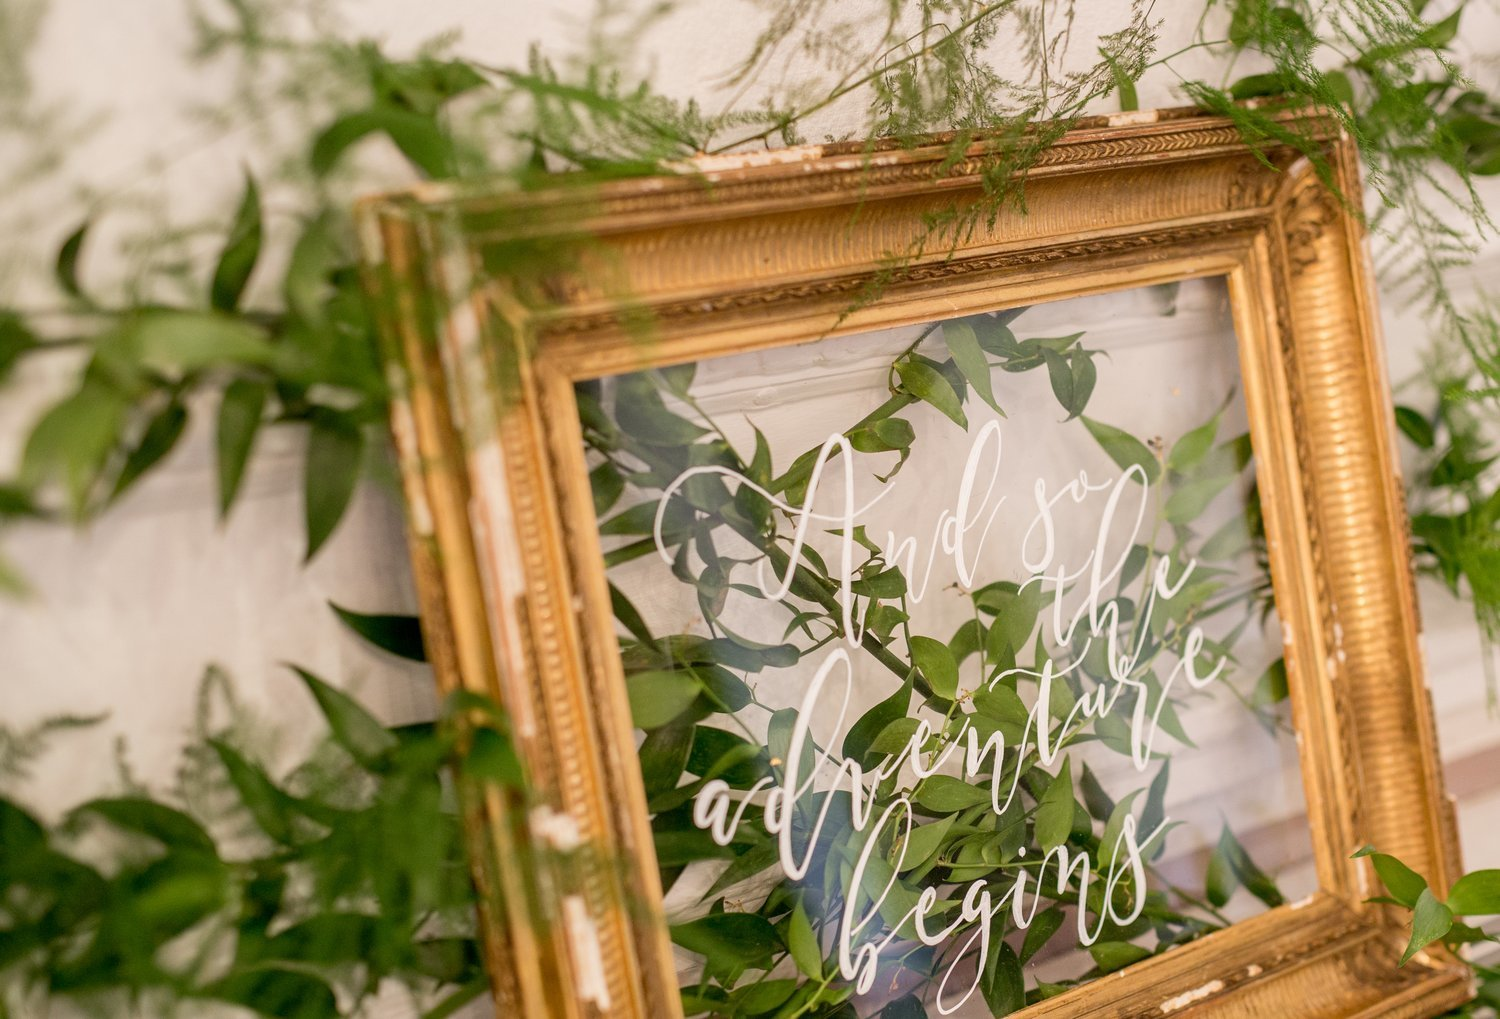 Antique frame 'And so the adventure Begins' sign